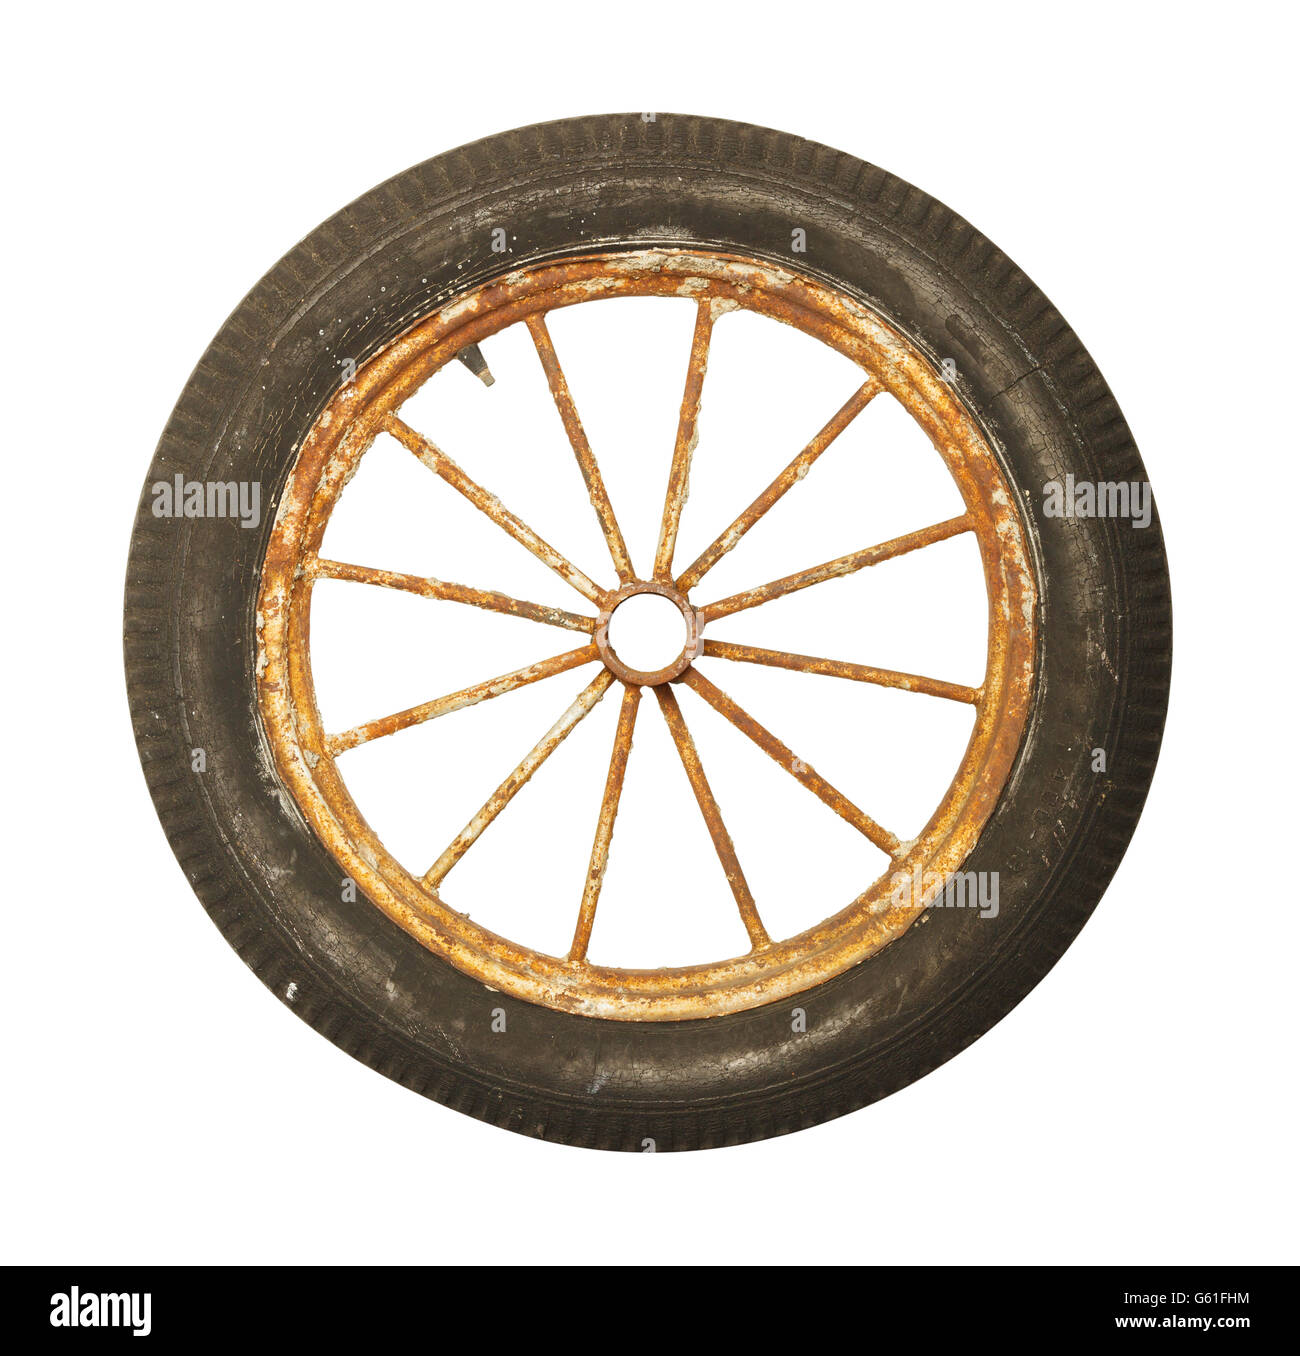 Antique Worn and Rusted Rubber Tire and Spoked Rim Isolated on White Background. - Stock Image